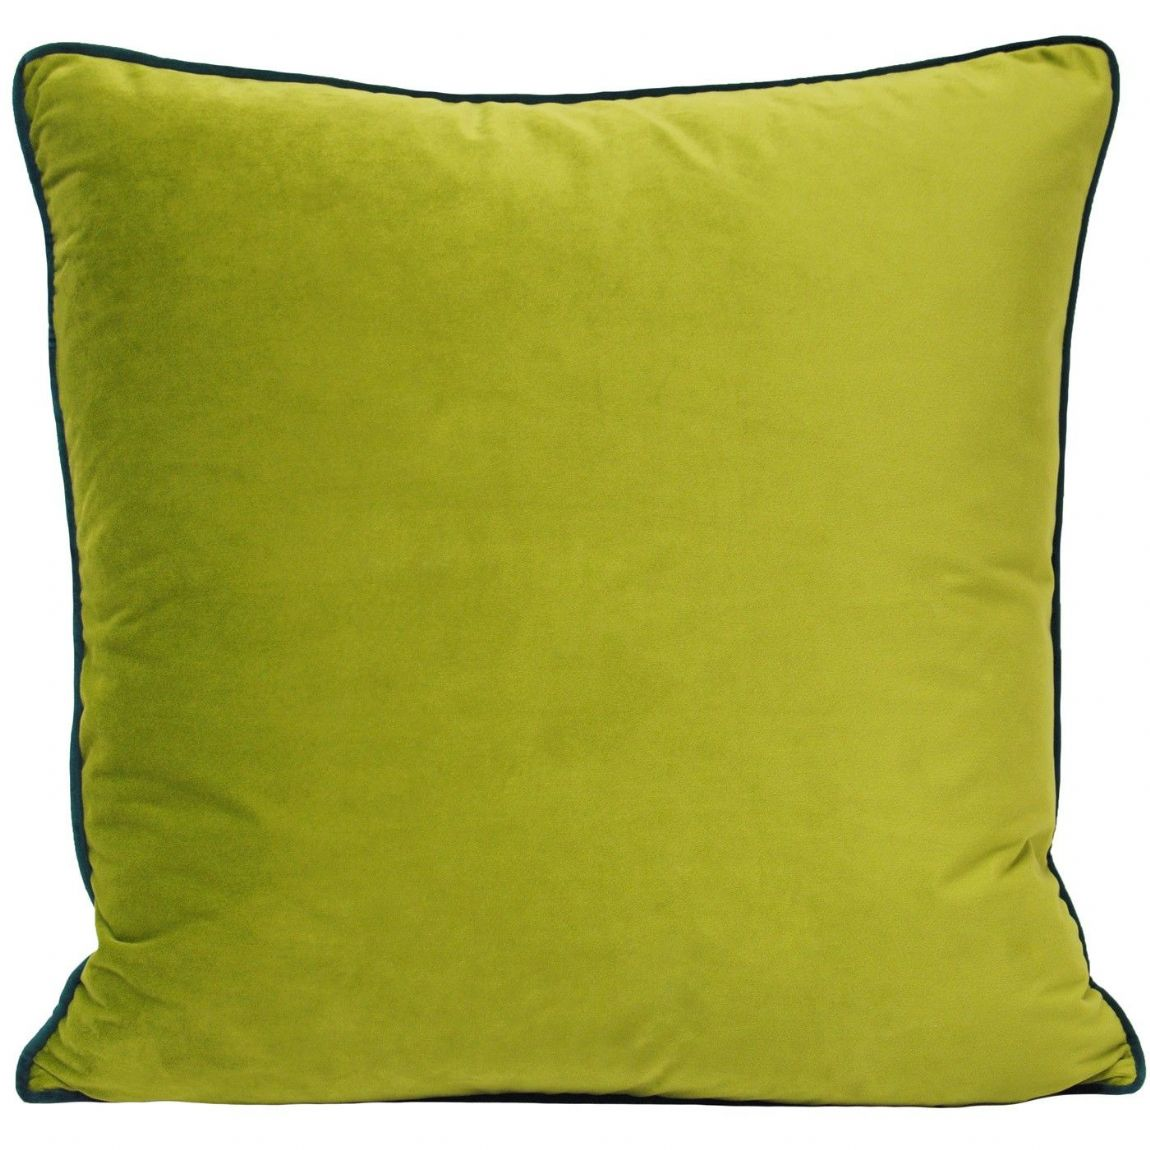 Chatruse Green & Emerald Velvet Cushion